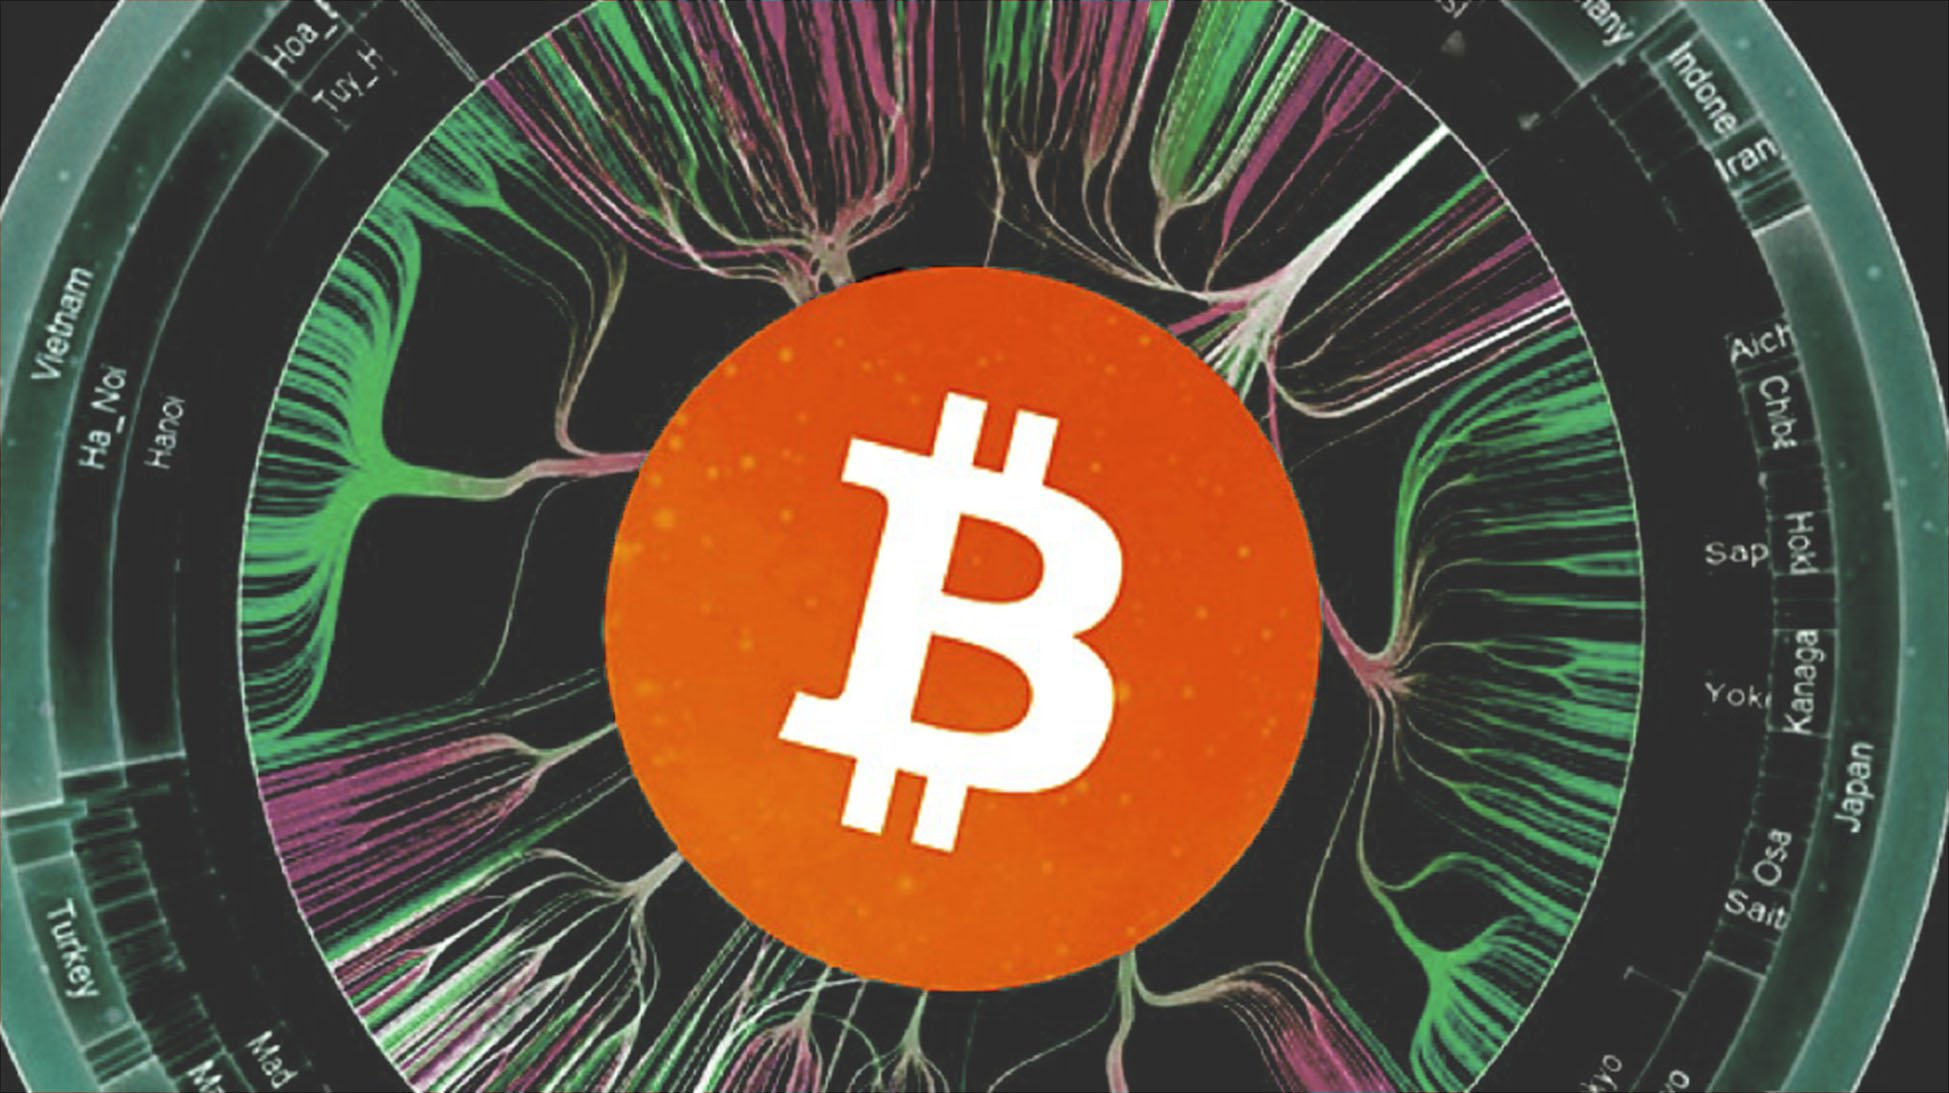 Bitcoin Core 0.15.0 Is Released: Here's What's New